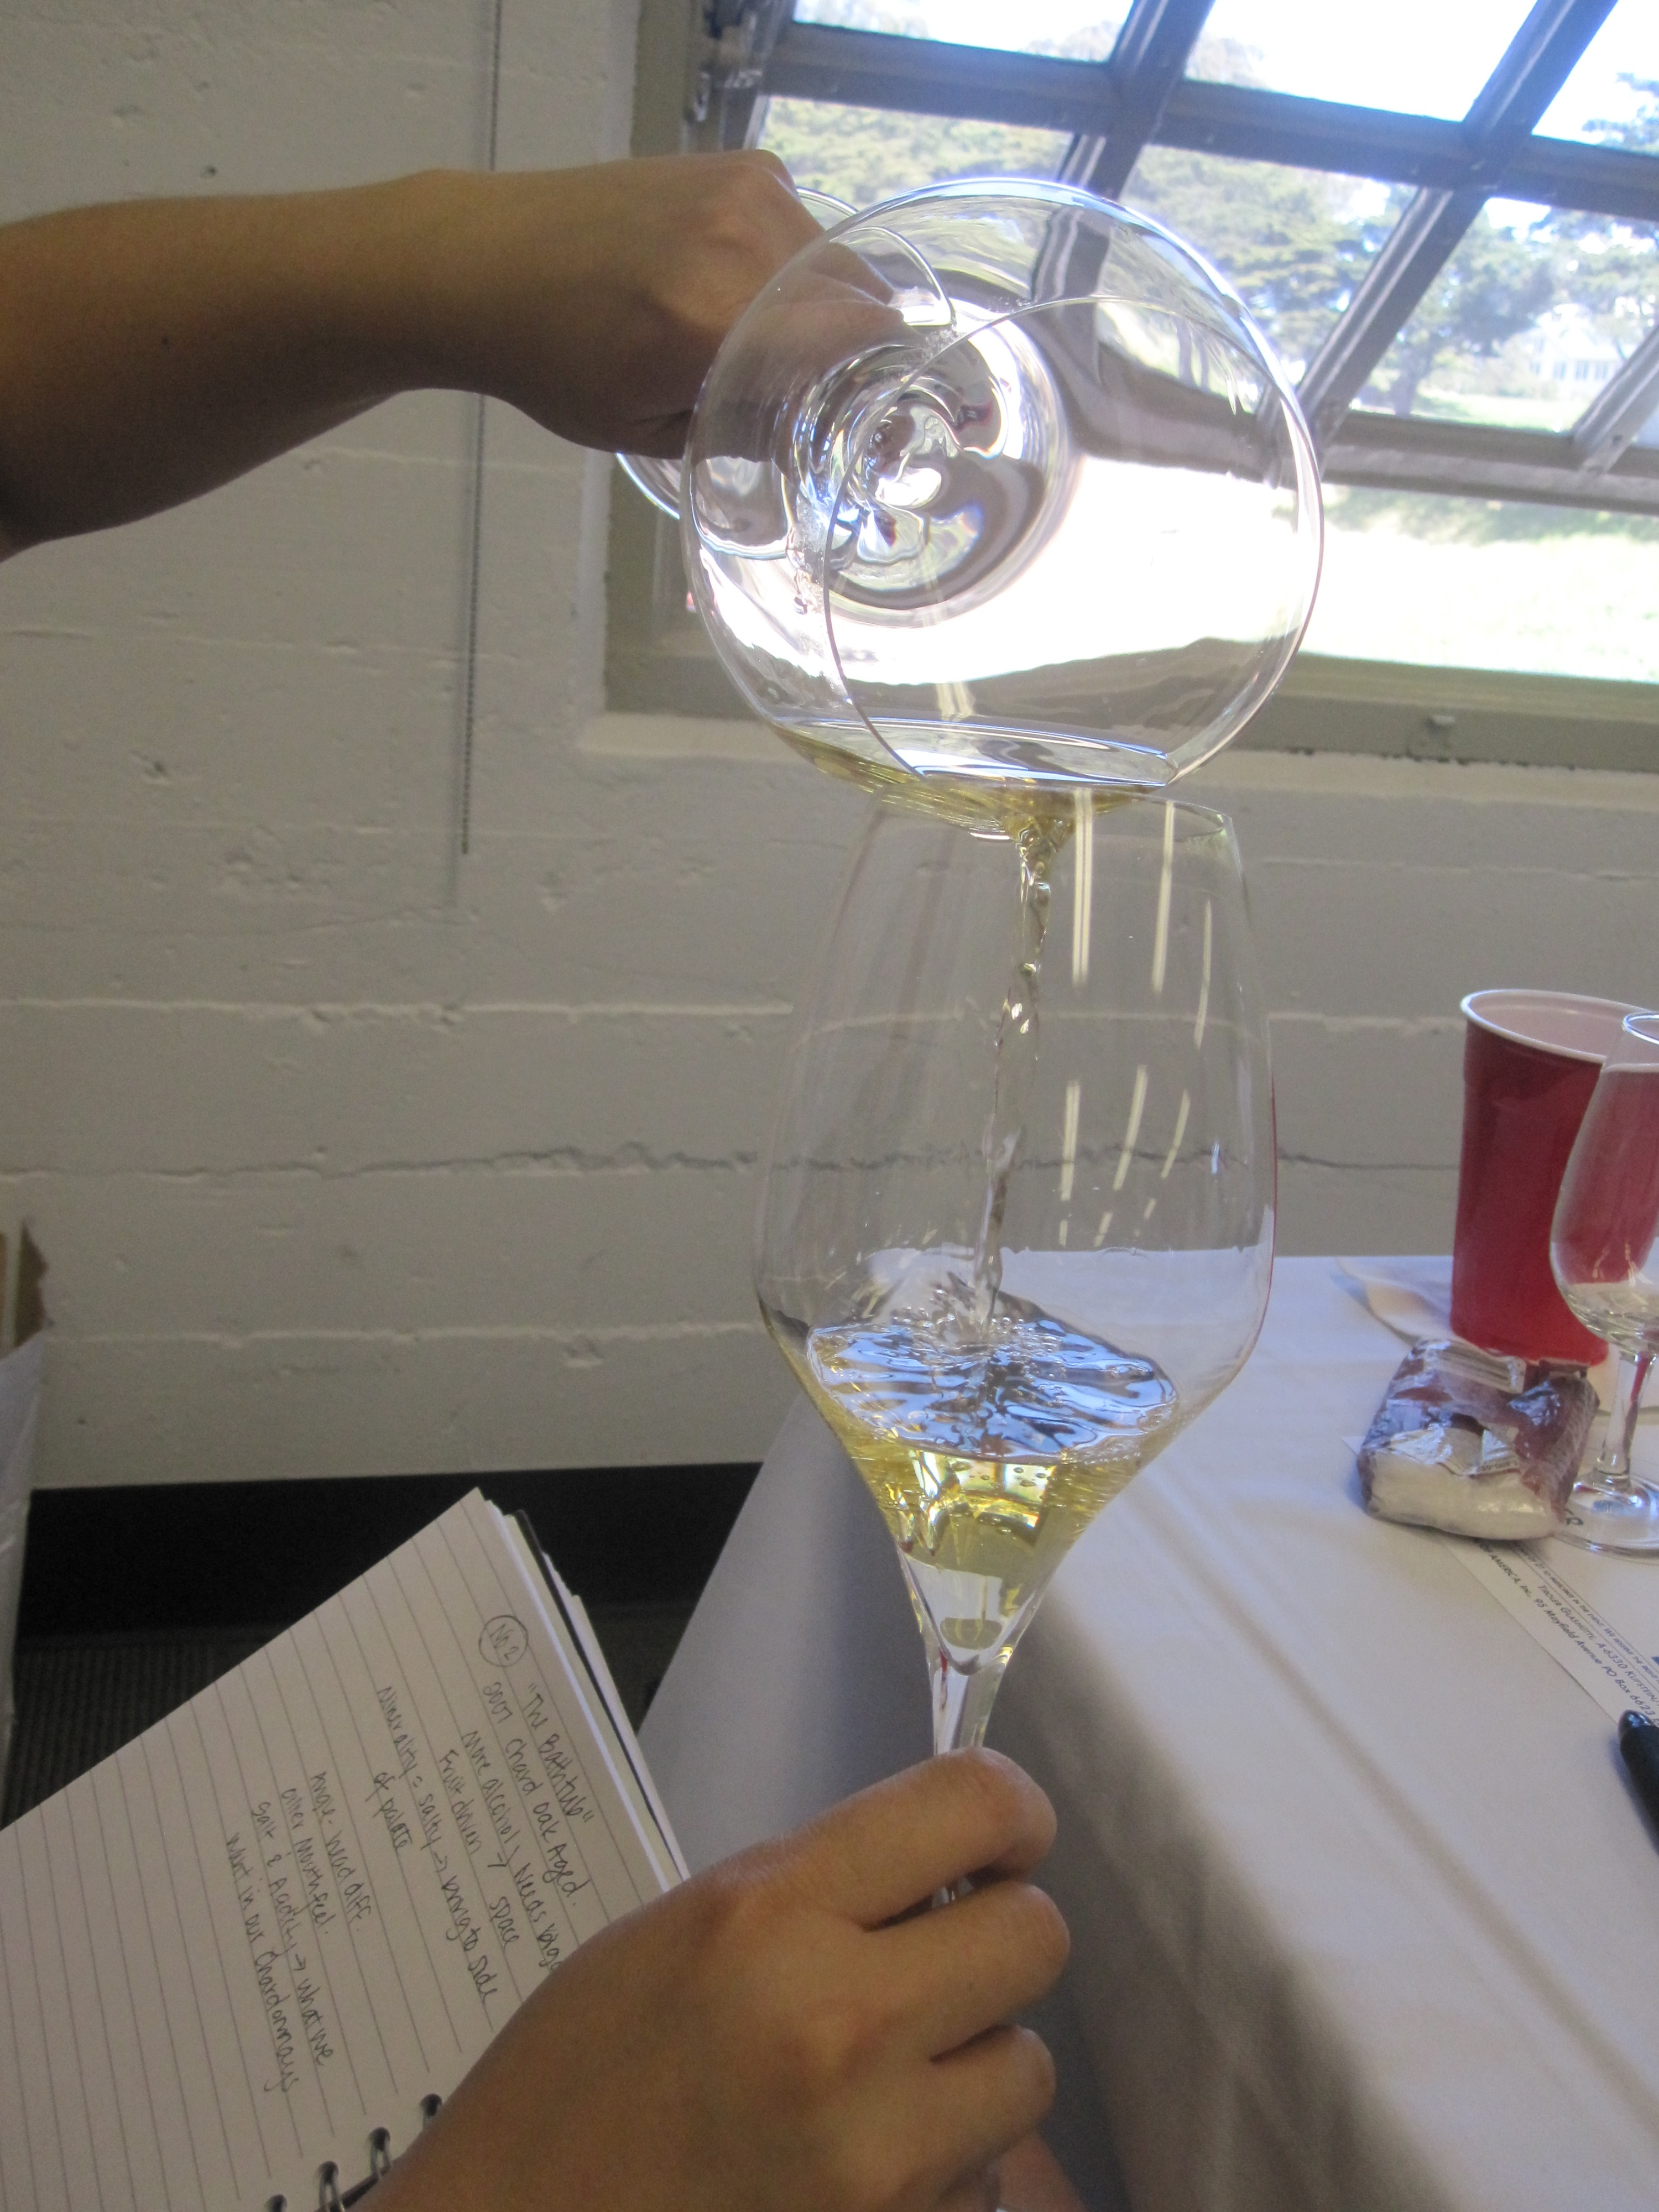 We transferred each wine from one glass to another, noting the way it changed in aroma and taste.